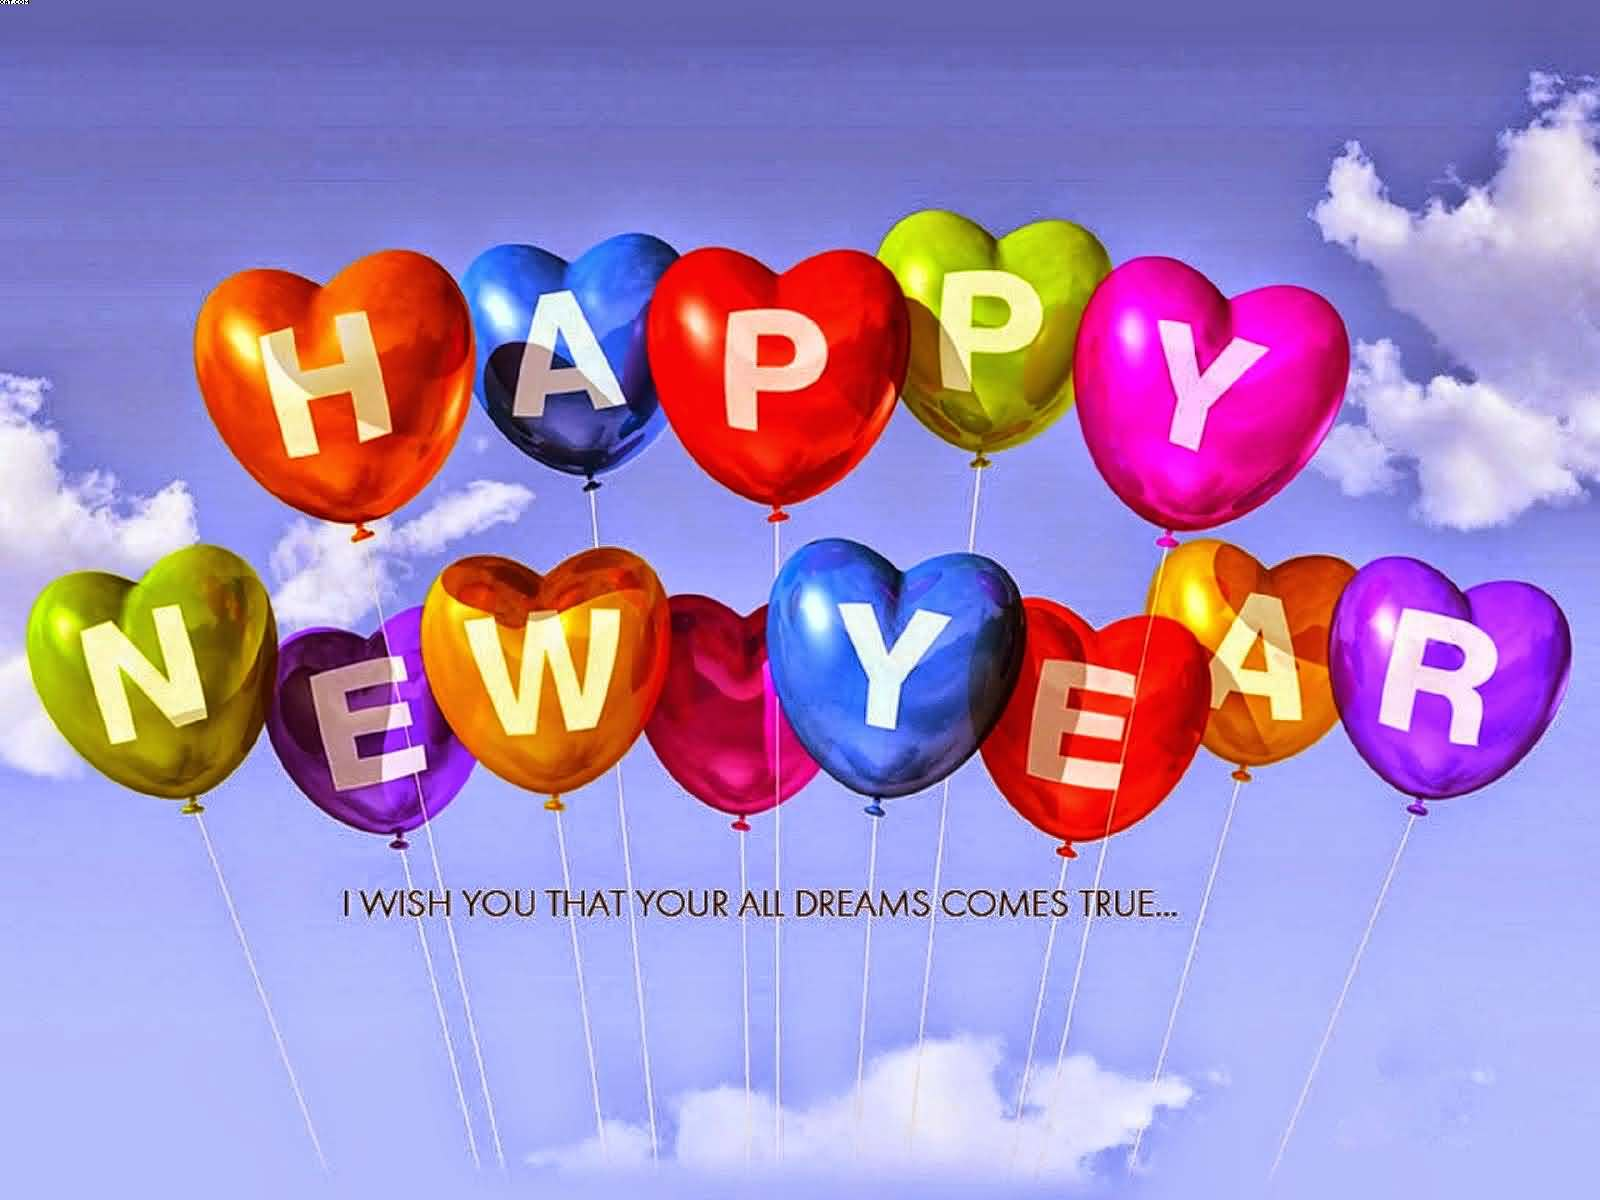 55 Most Amazing Happy New Year 2018 Greeting Ideas 1600x1200